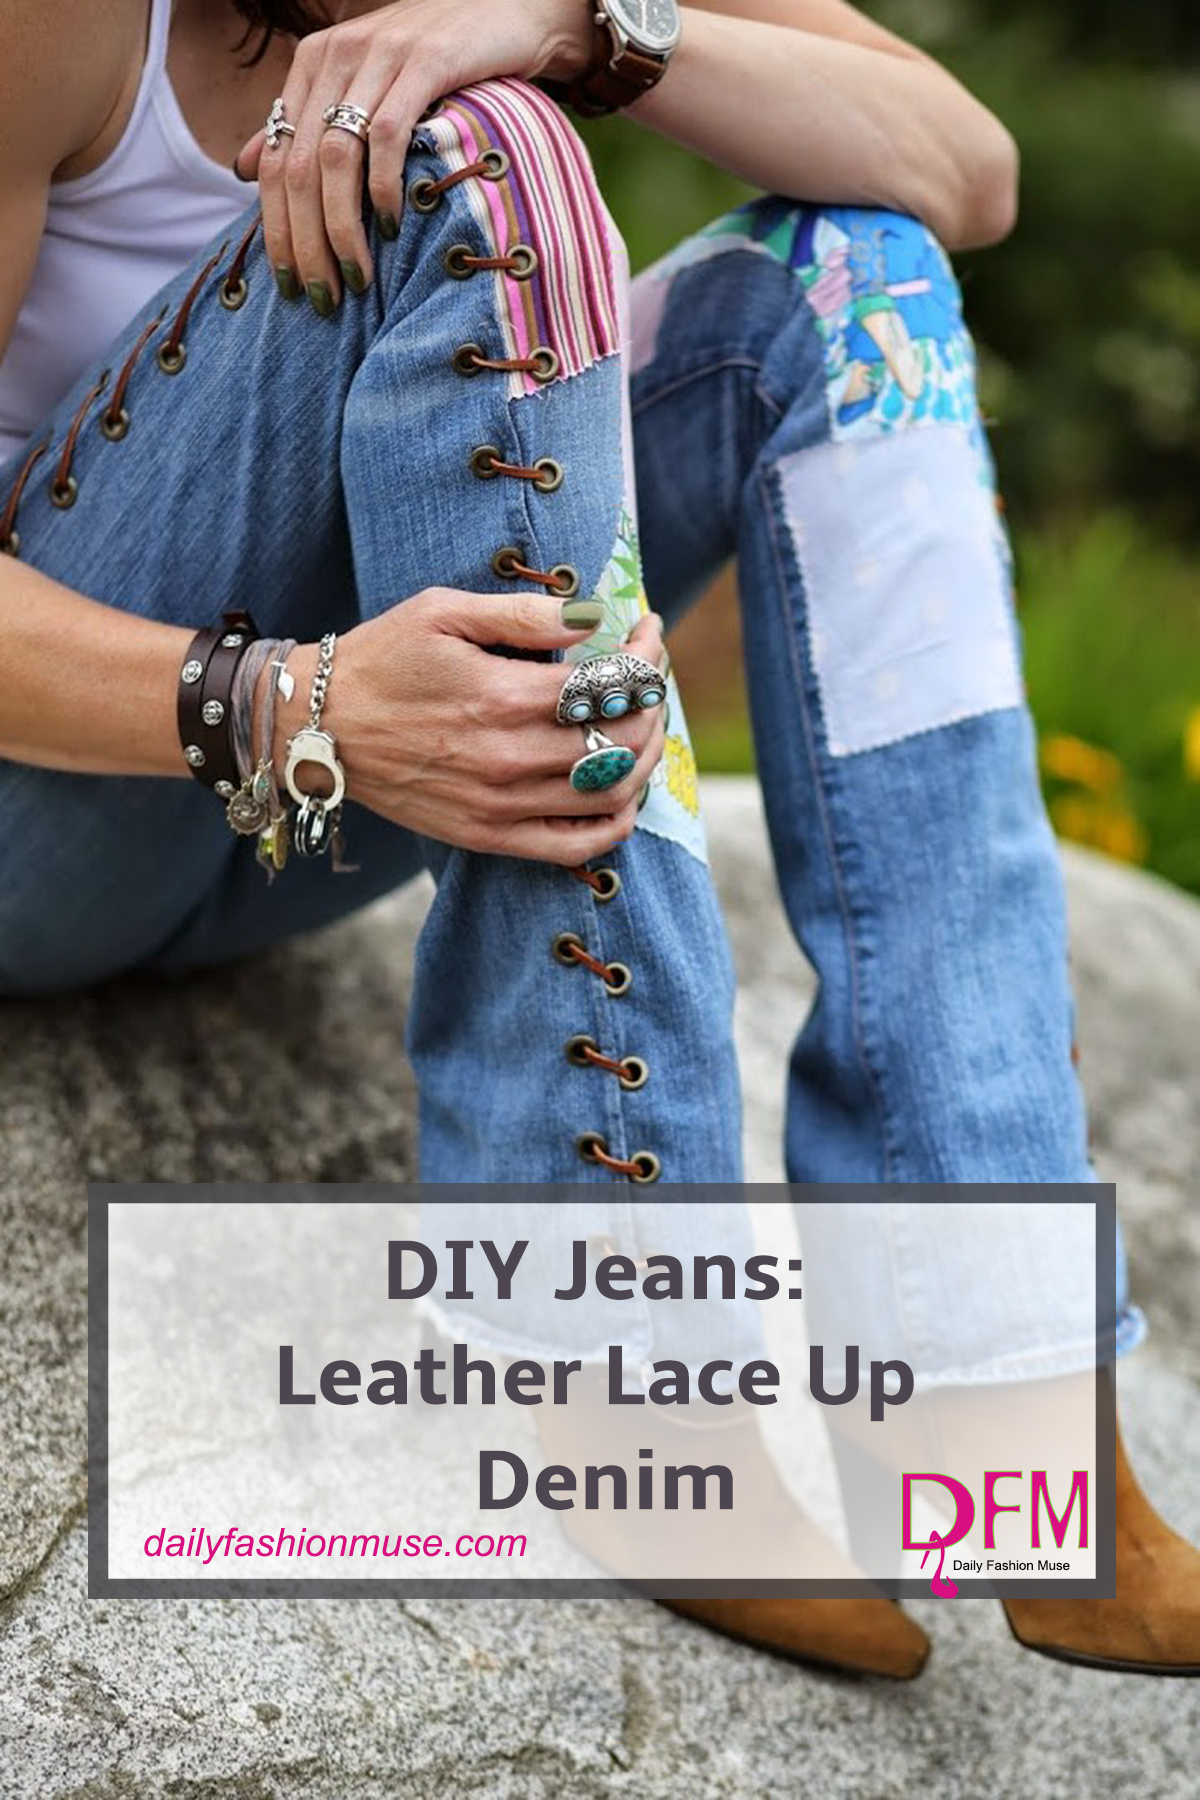 DIY Jeans: Leather Lace Up Denim - Daily Fashion Muse